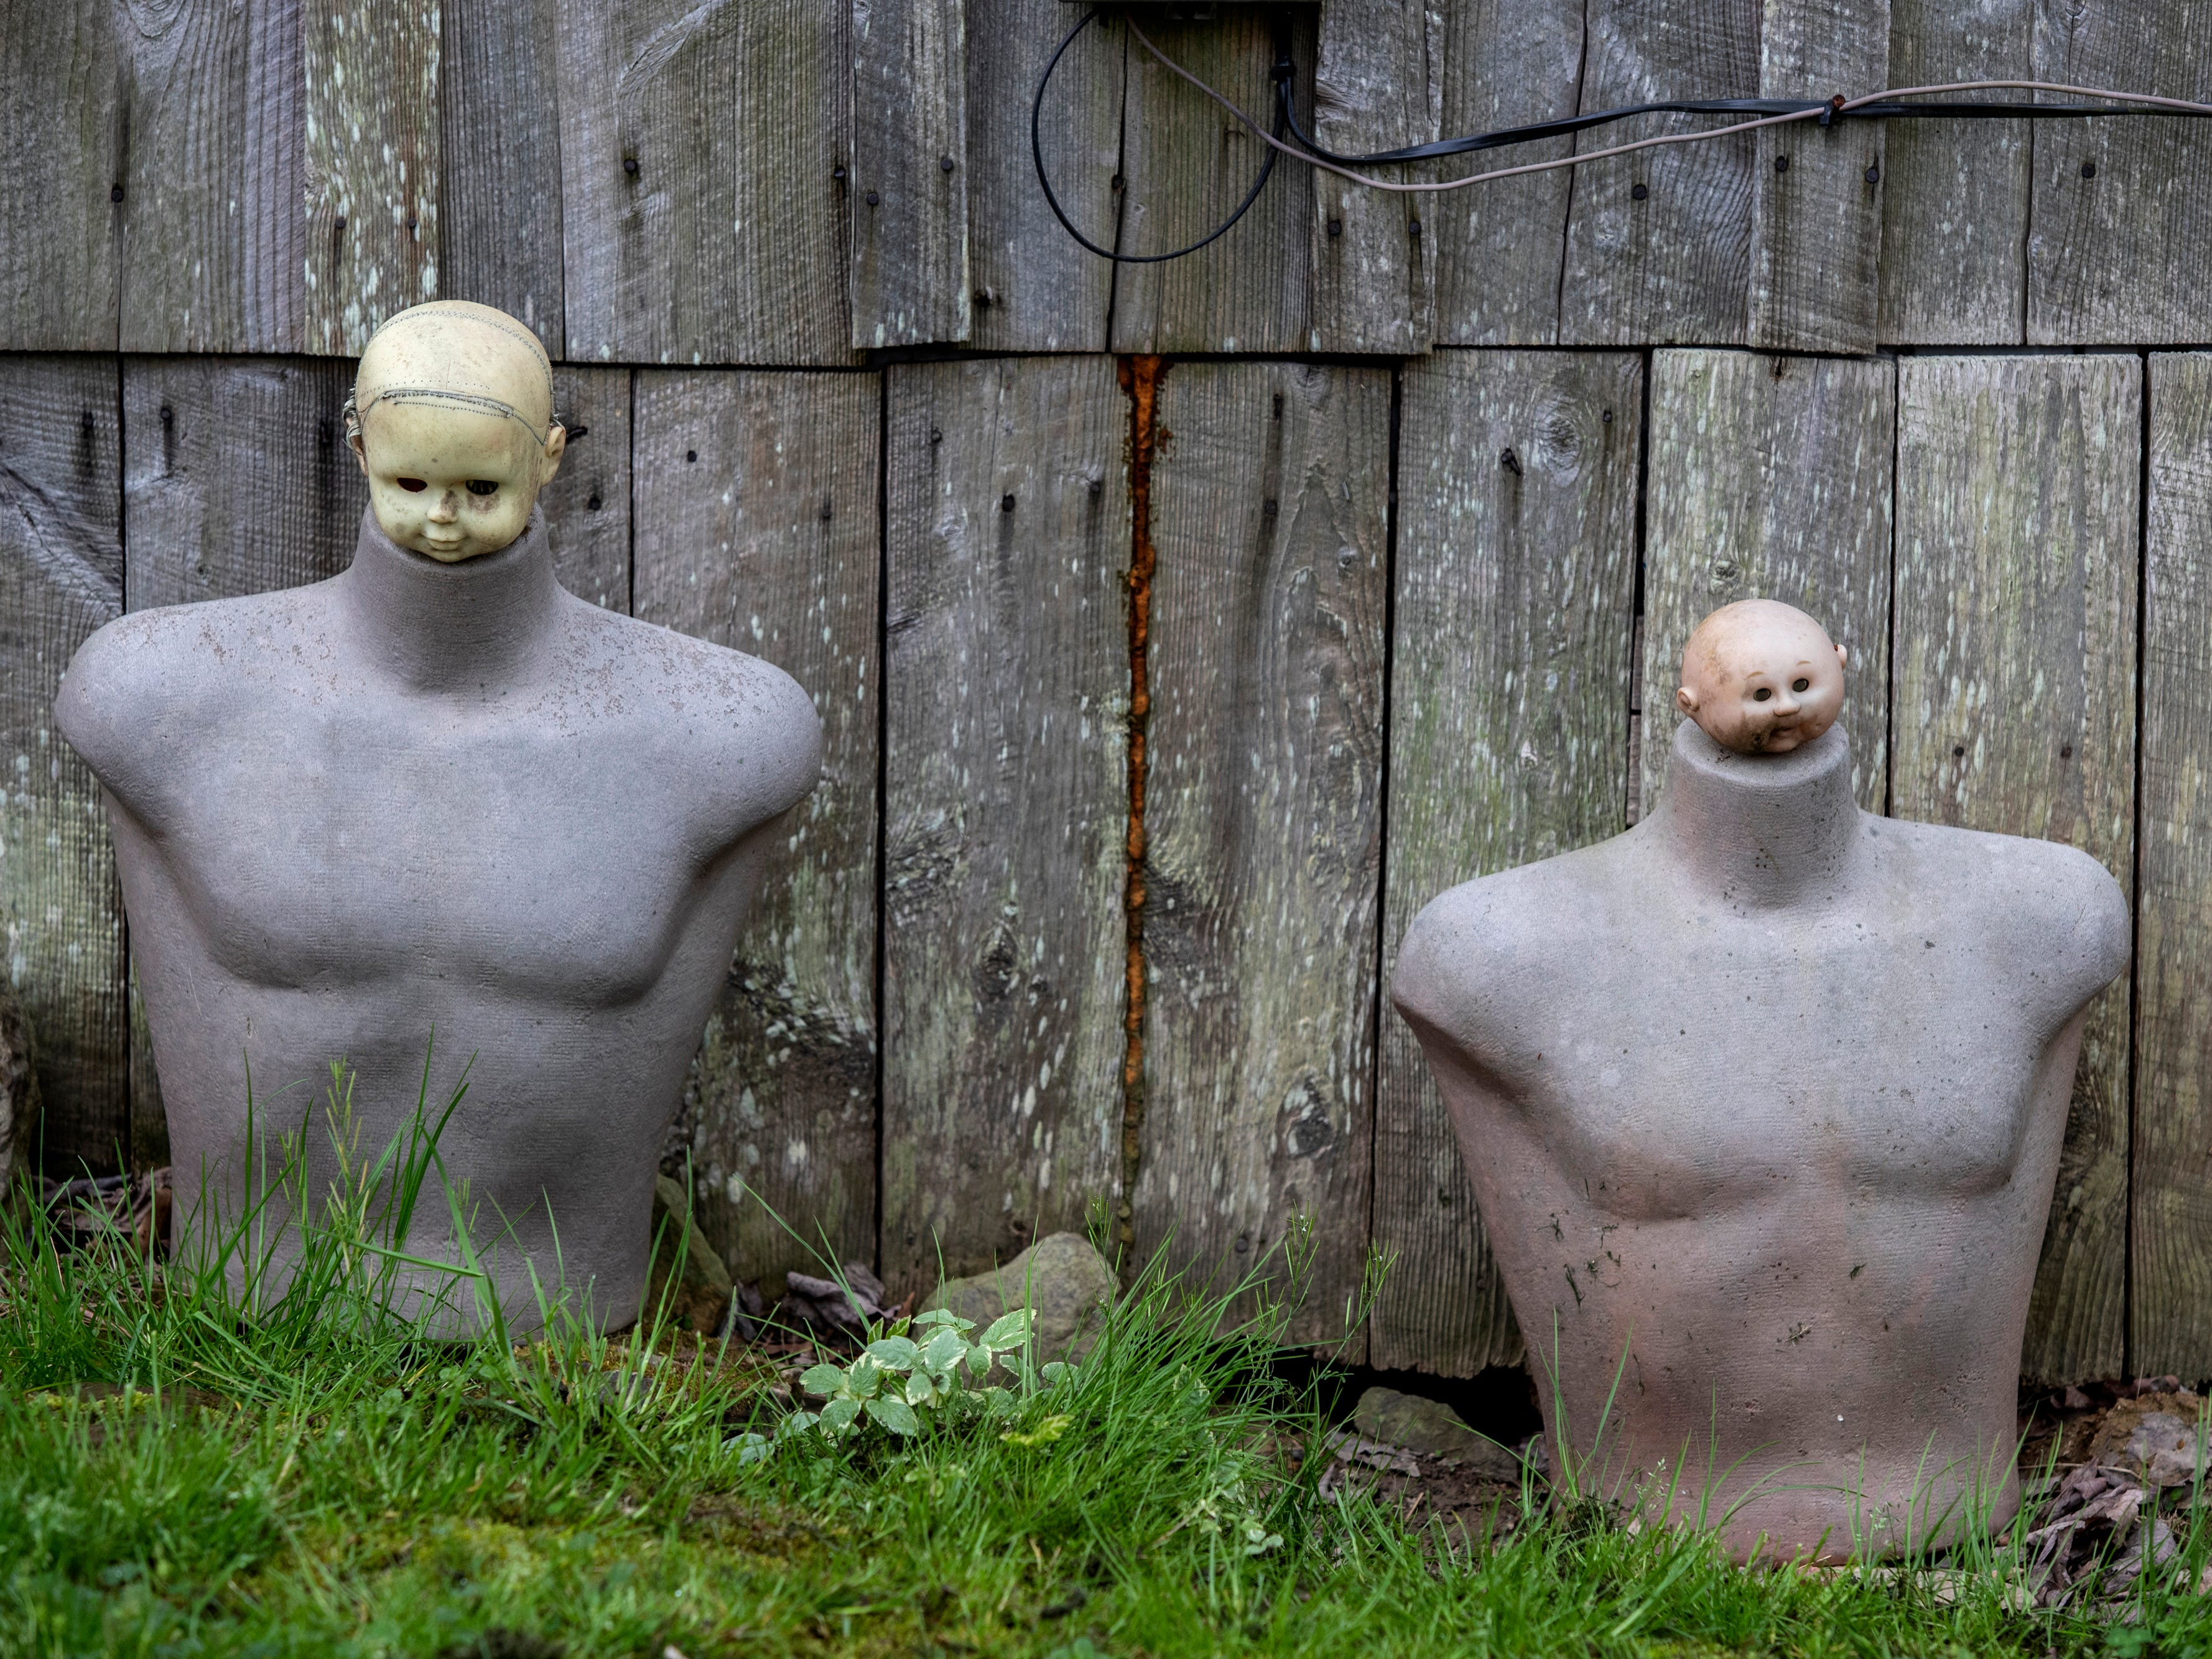 The heads of baby dolls rest atop male mannequin torsos at the Home for Wayward Babydolls. April 19, 2019